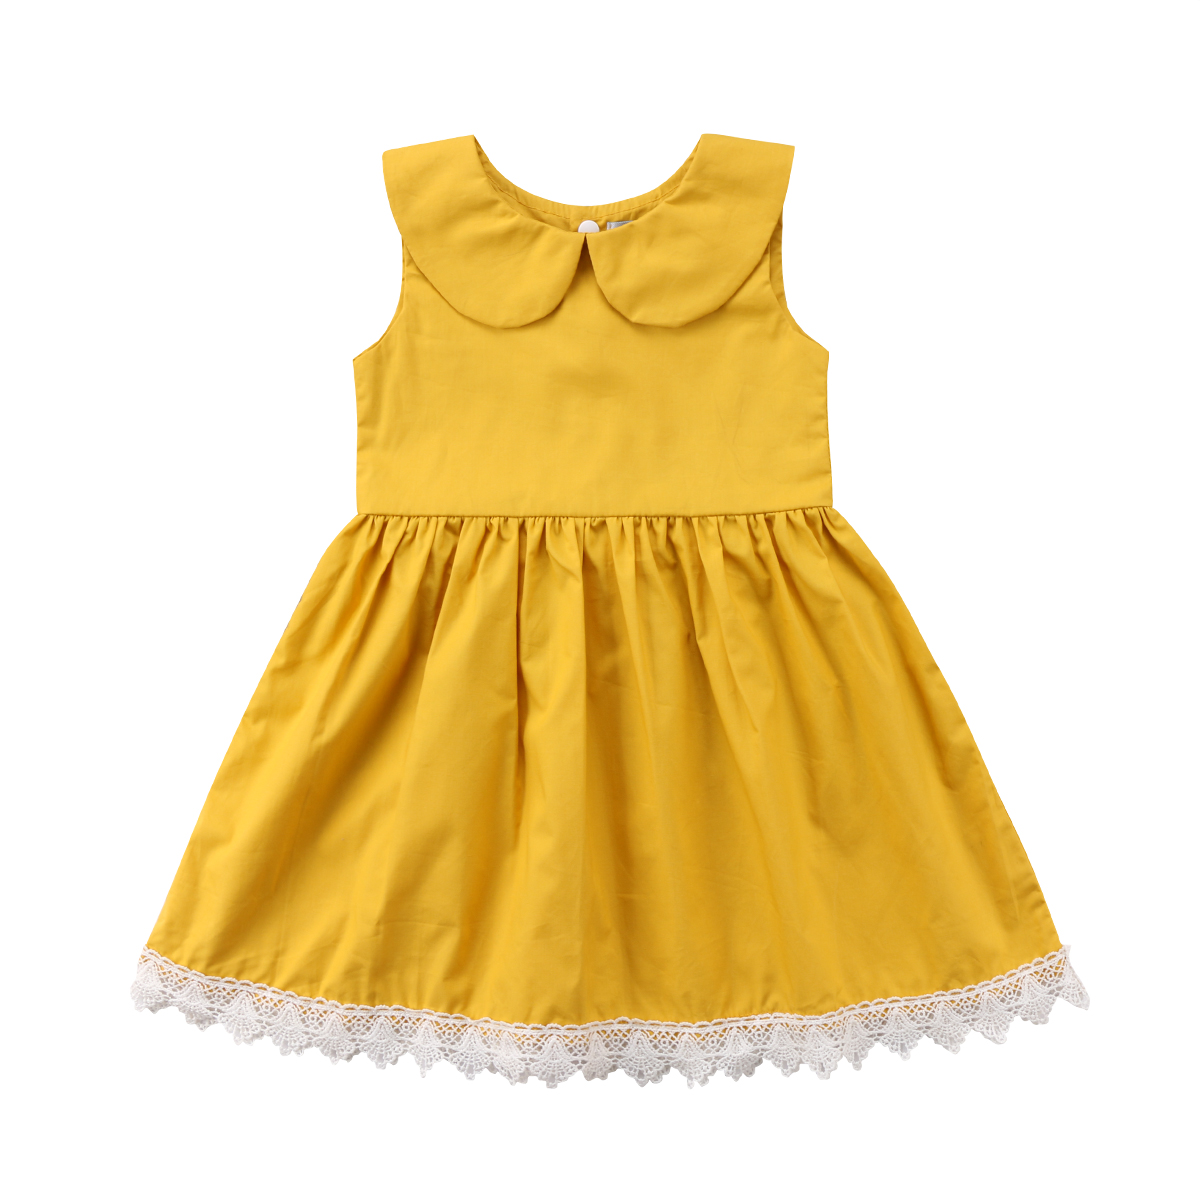 Toddler Girl Princess Dress Summer Sleeveless Yellow Cute Girls Clothing Round Neck Kids Baby Party Pageant Solid Lace Flower ems dhl free shipping toddler little girl s 2017 princess ruffles layers sleeveless lace dress summer style suspender